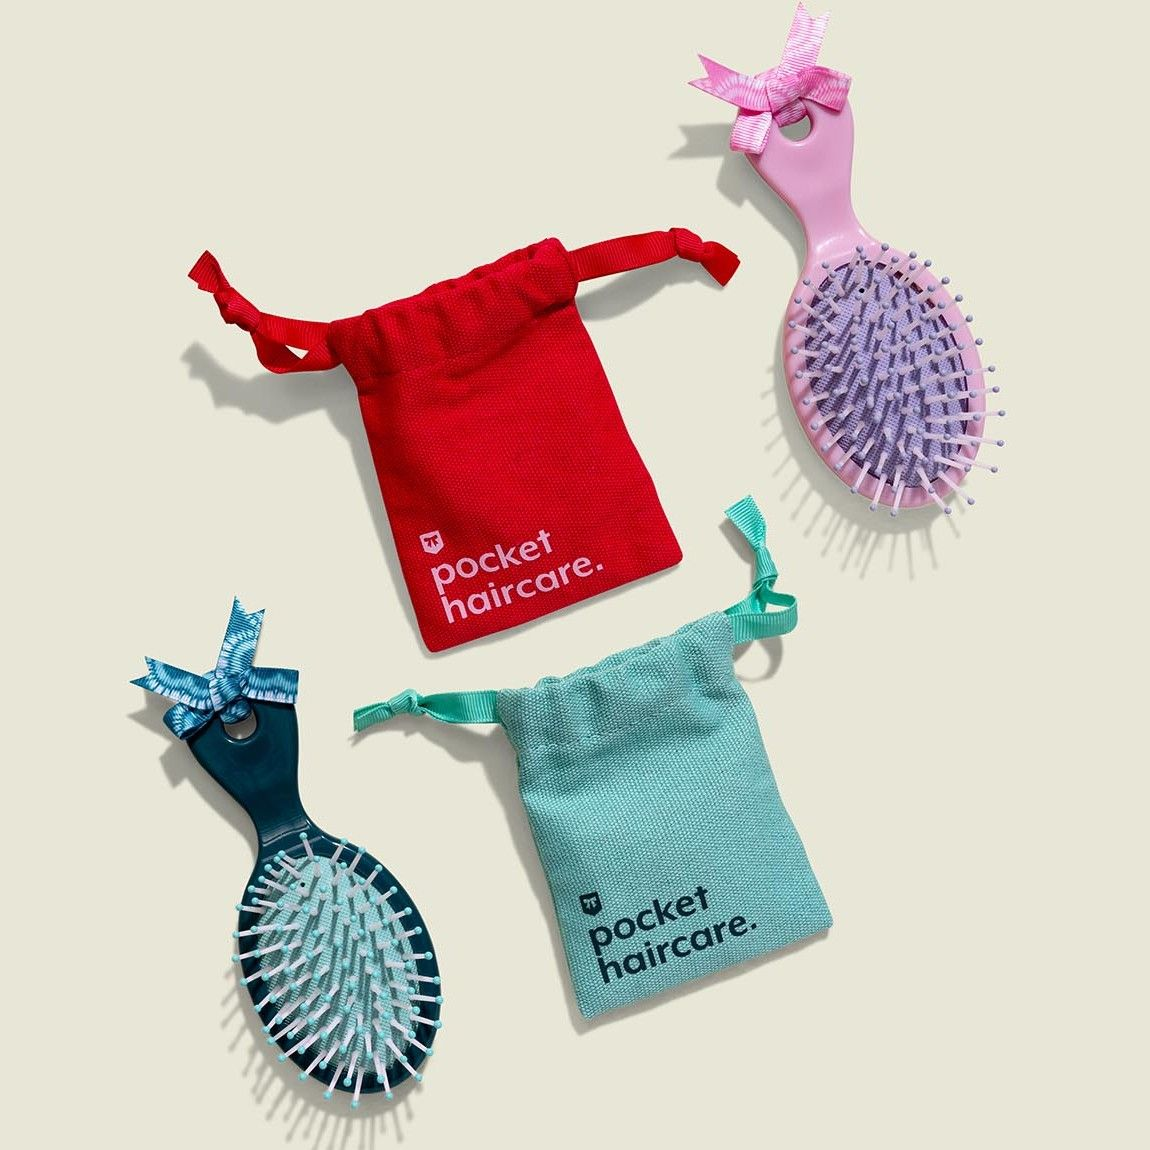 Drawstring pouches with hair brushes